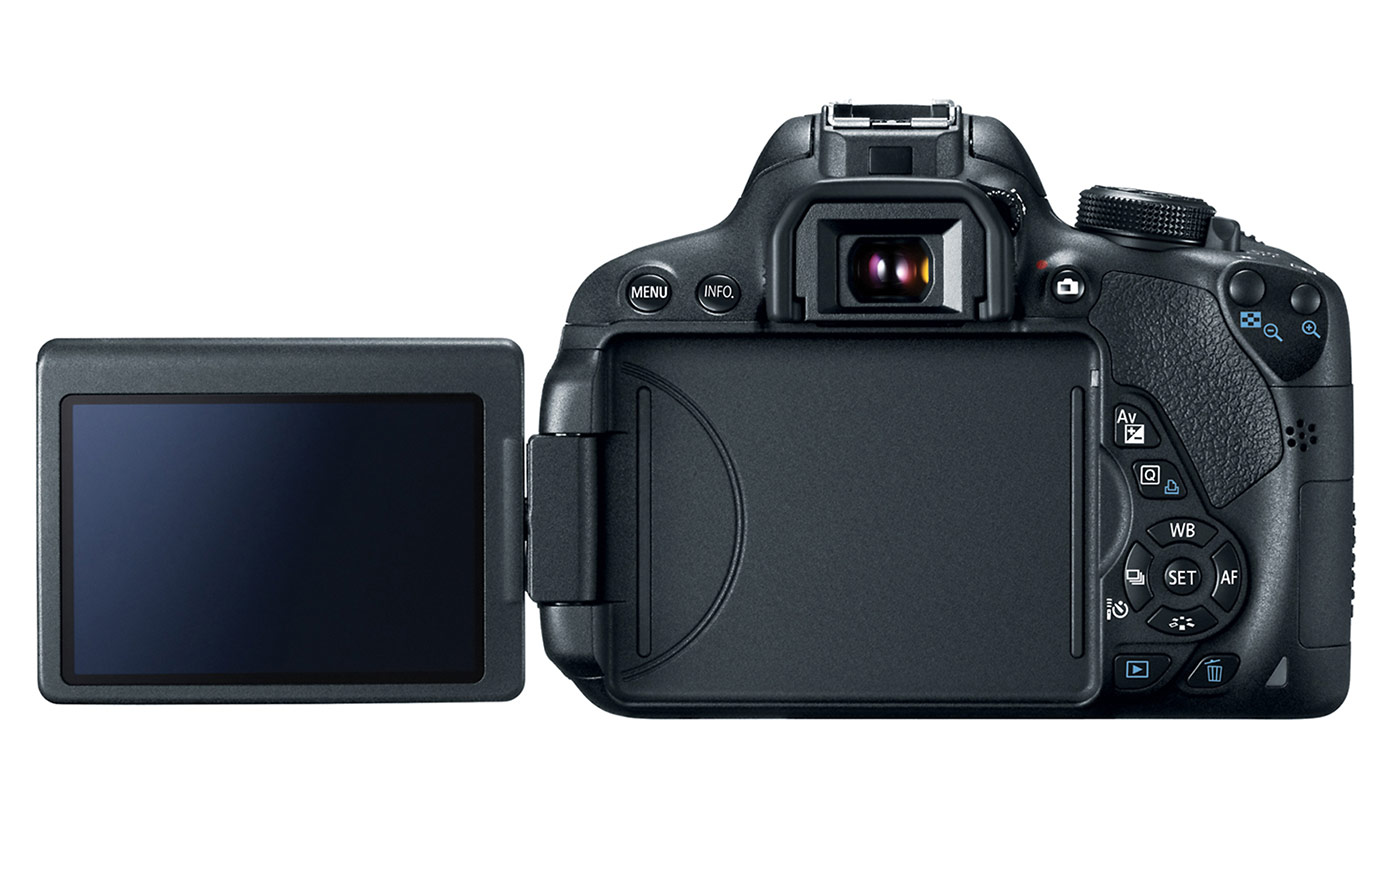 Canon EOS Rebel T5i / EOS 700D - Rear With 3-inch Tilt-Swivel Touchscreen Display